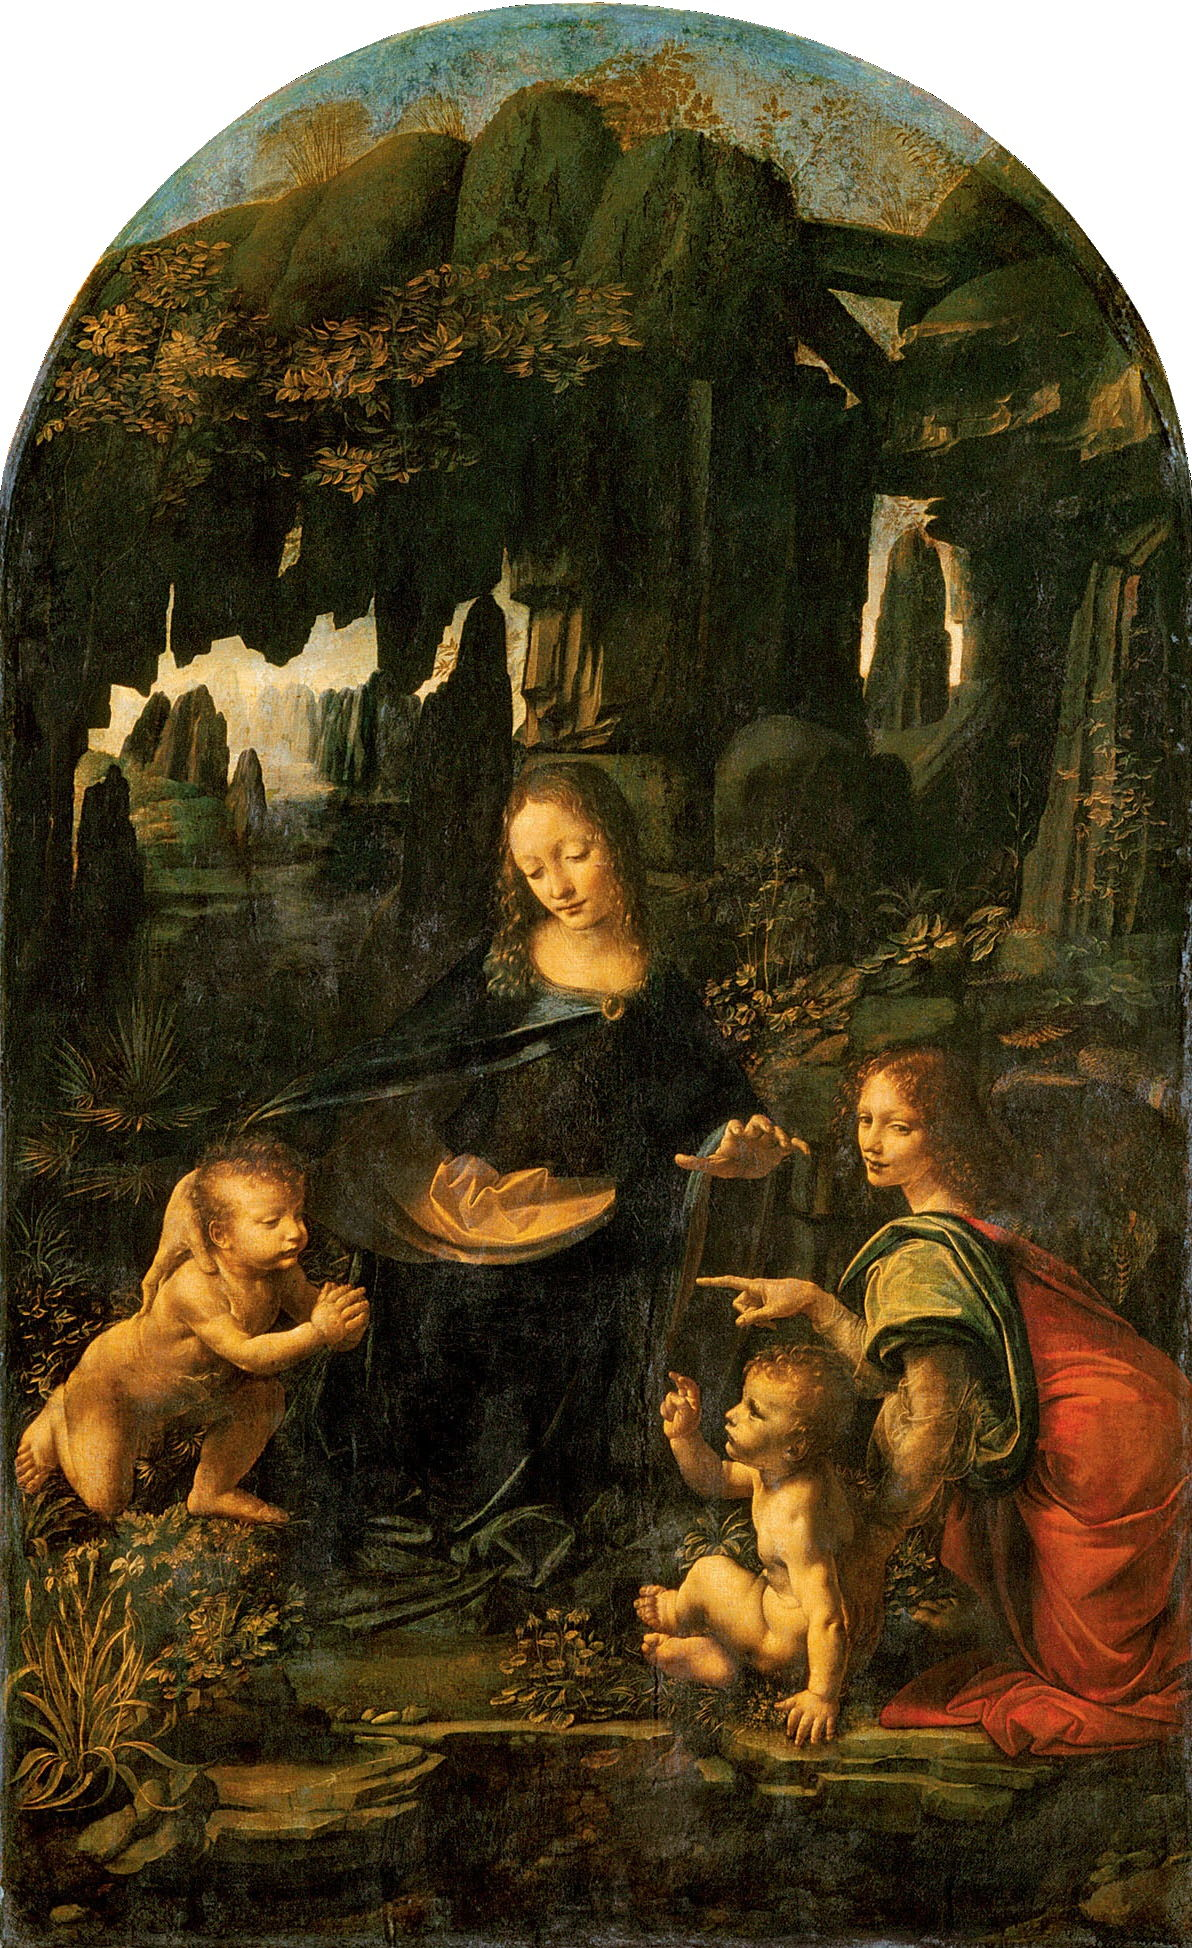 Virgin of the Rocks by Leonardo da Vinci (Louvre version)